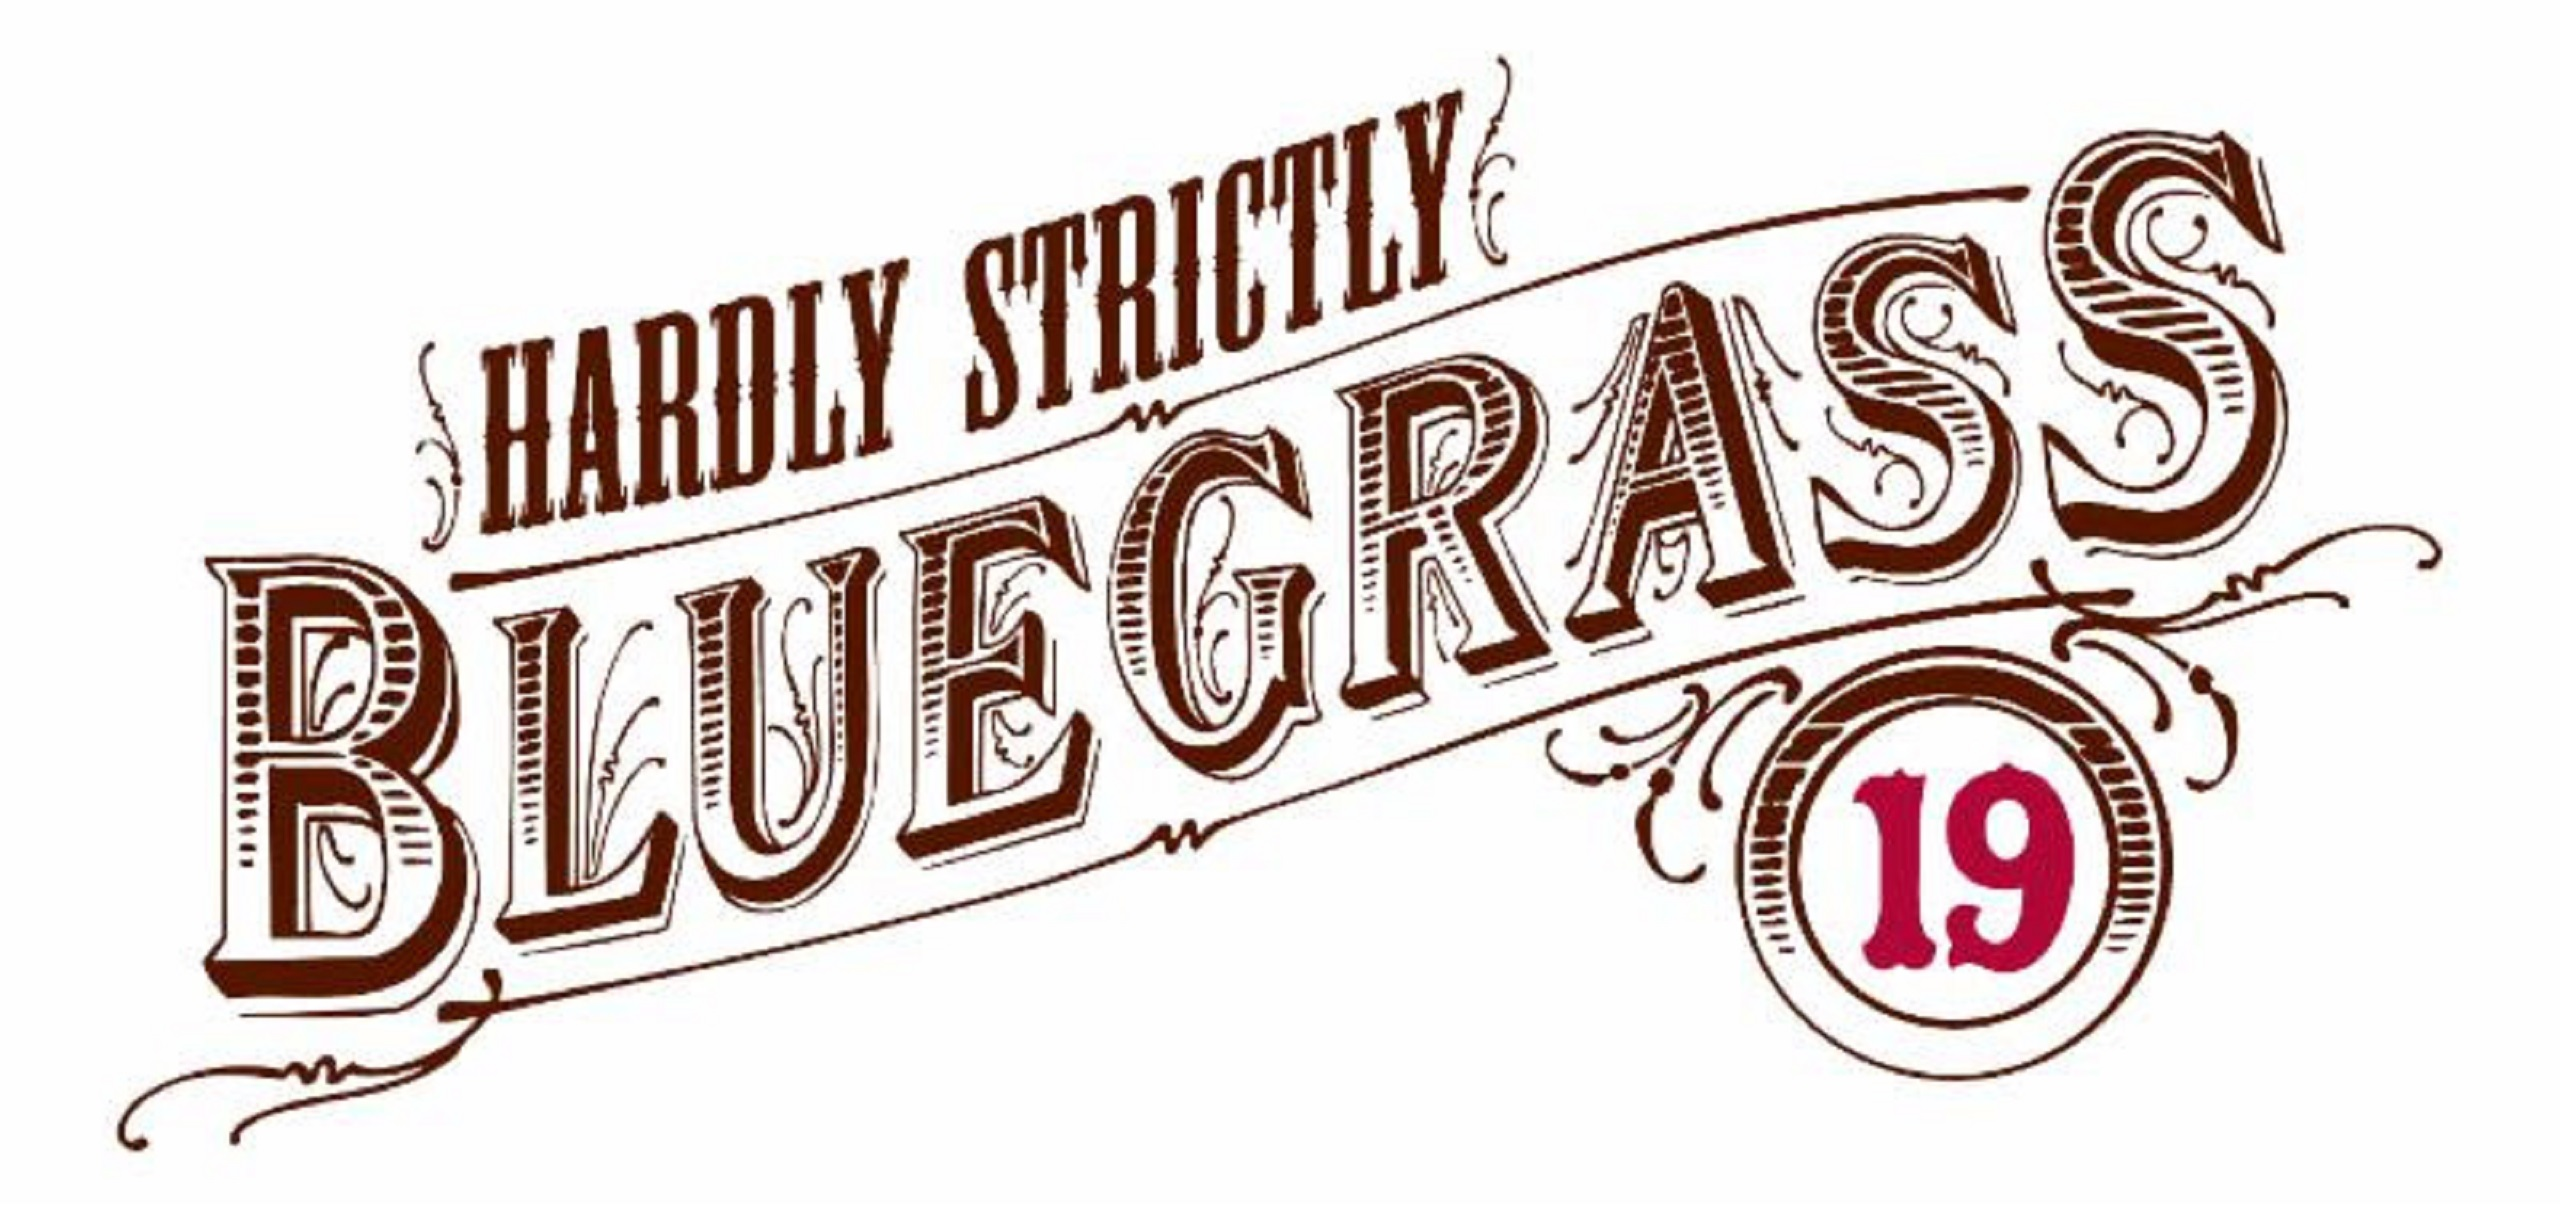 Hardly Strictly Bluegrass Announces First Round Of Lineup For 2019